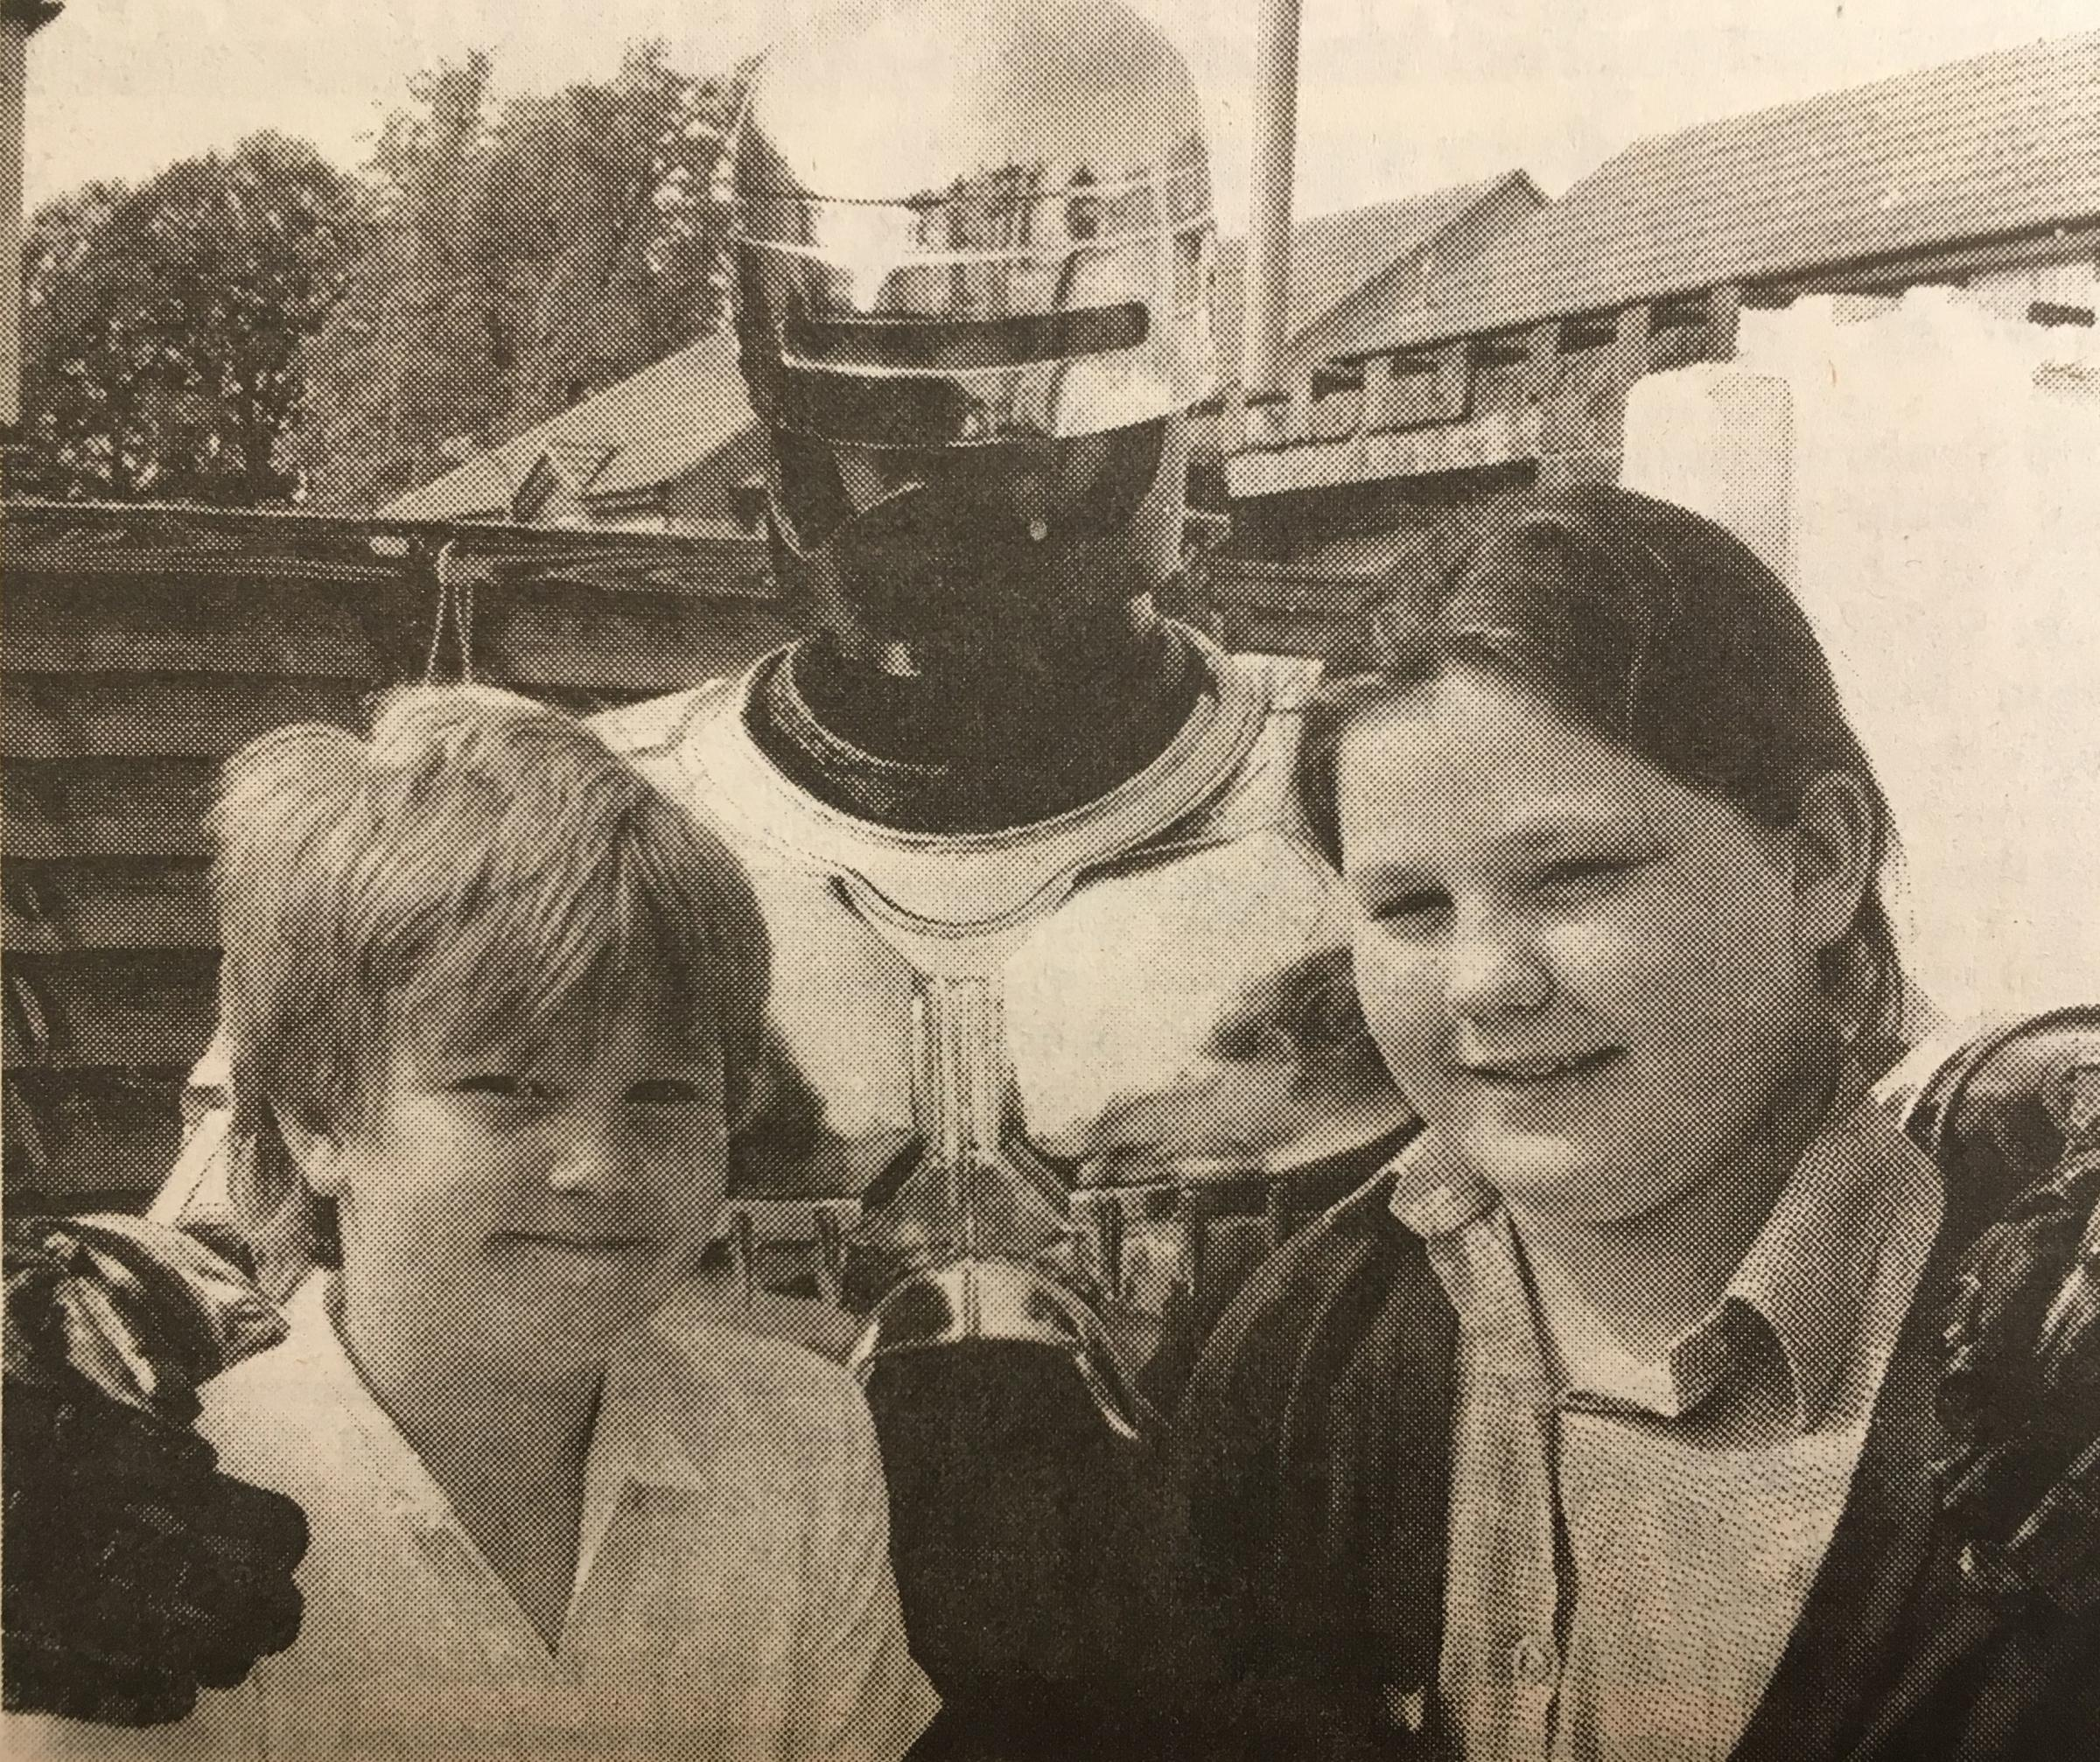 Robocop at North Town Primary School